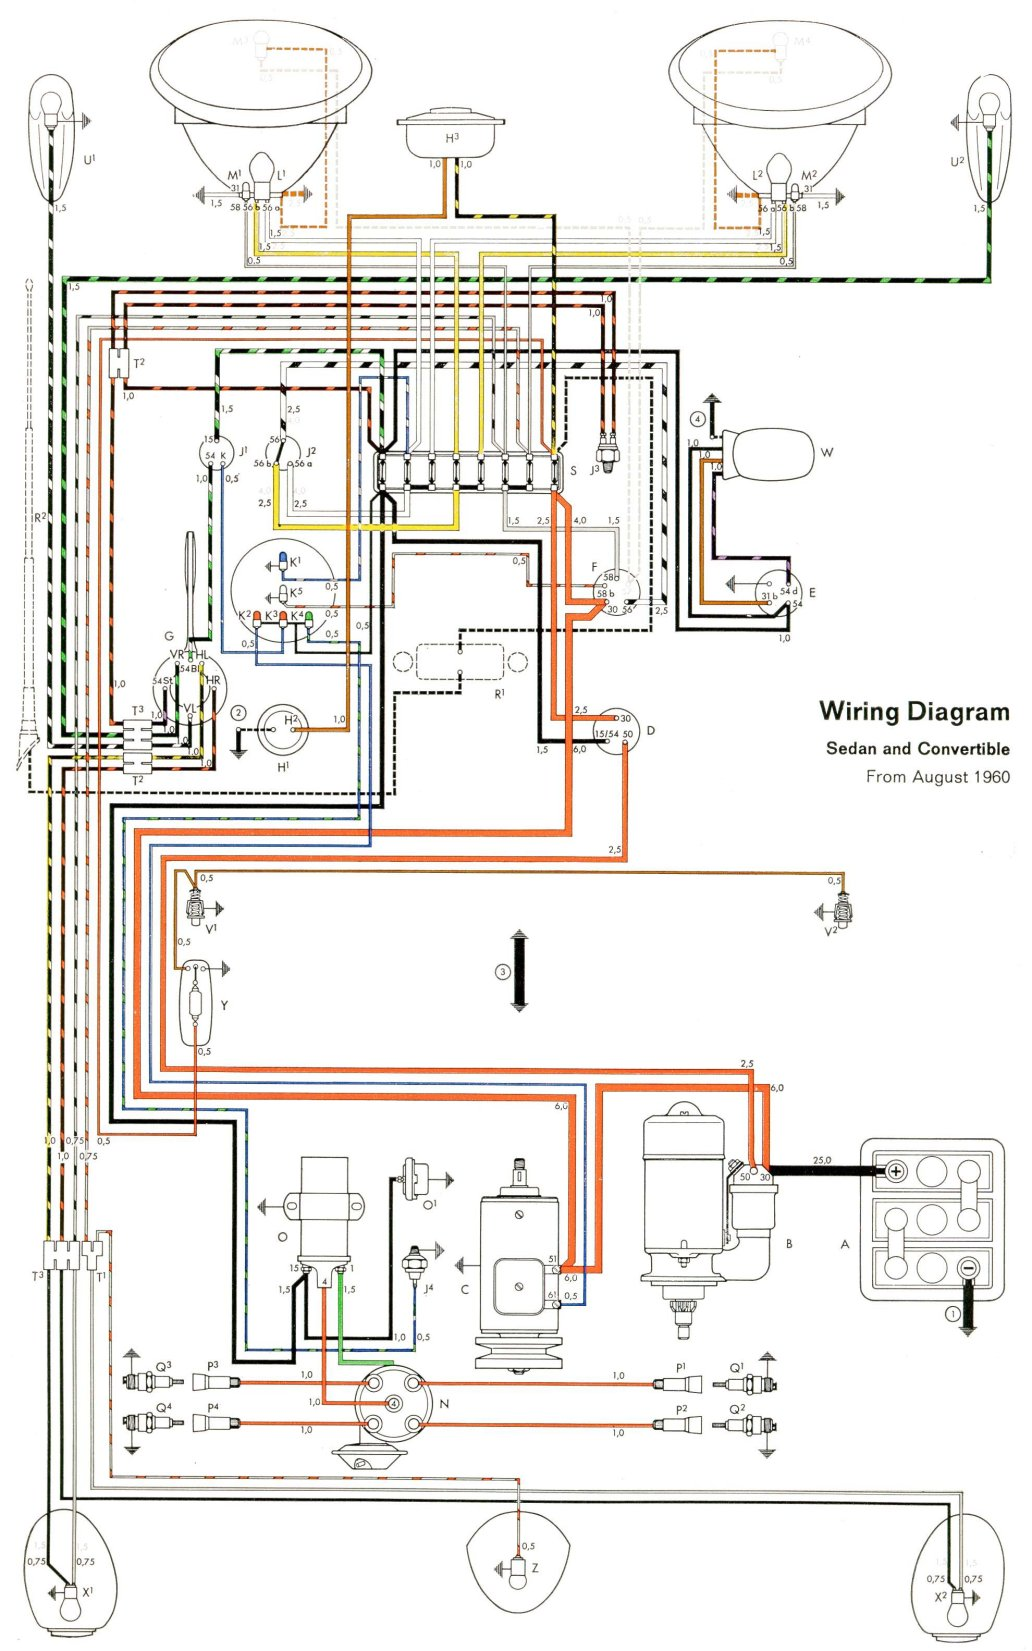 Vw Wiring Harness Diagram Will Be A Thing Rail Alternator Thesamba Com Type 1 Diagrams Rh 2003 Passat Volkswagen